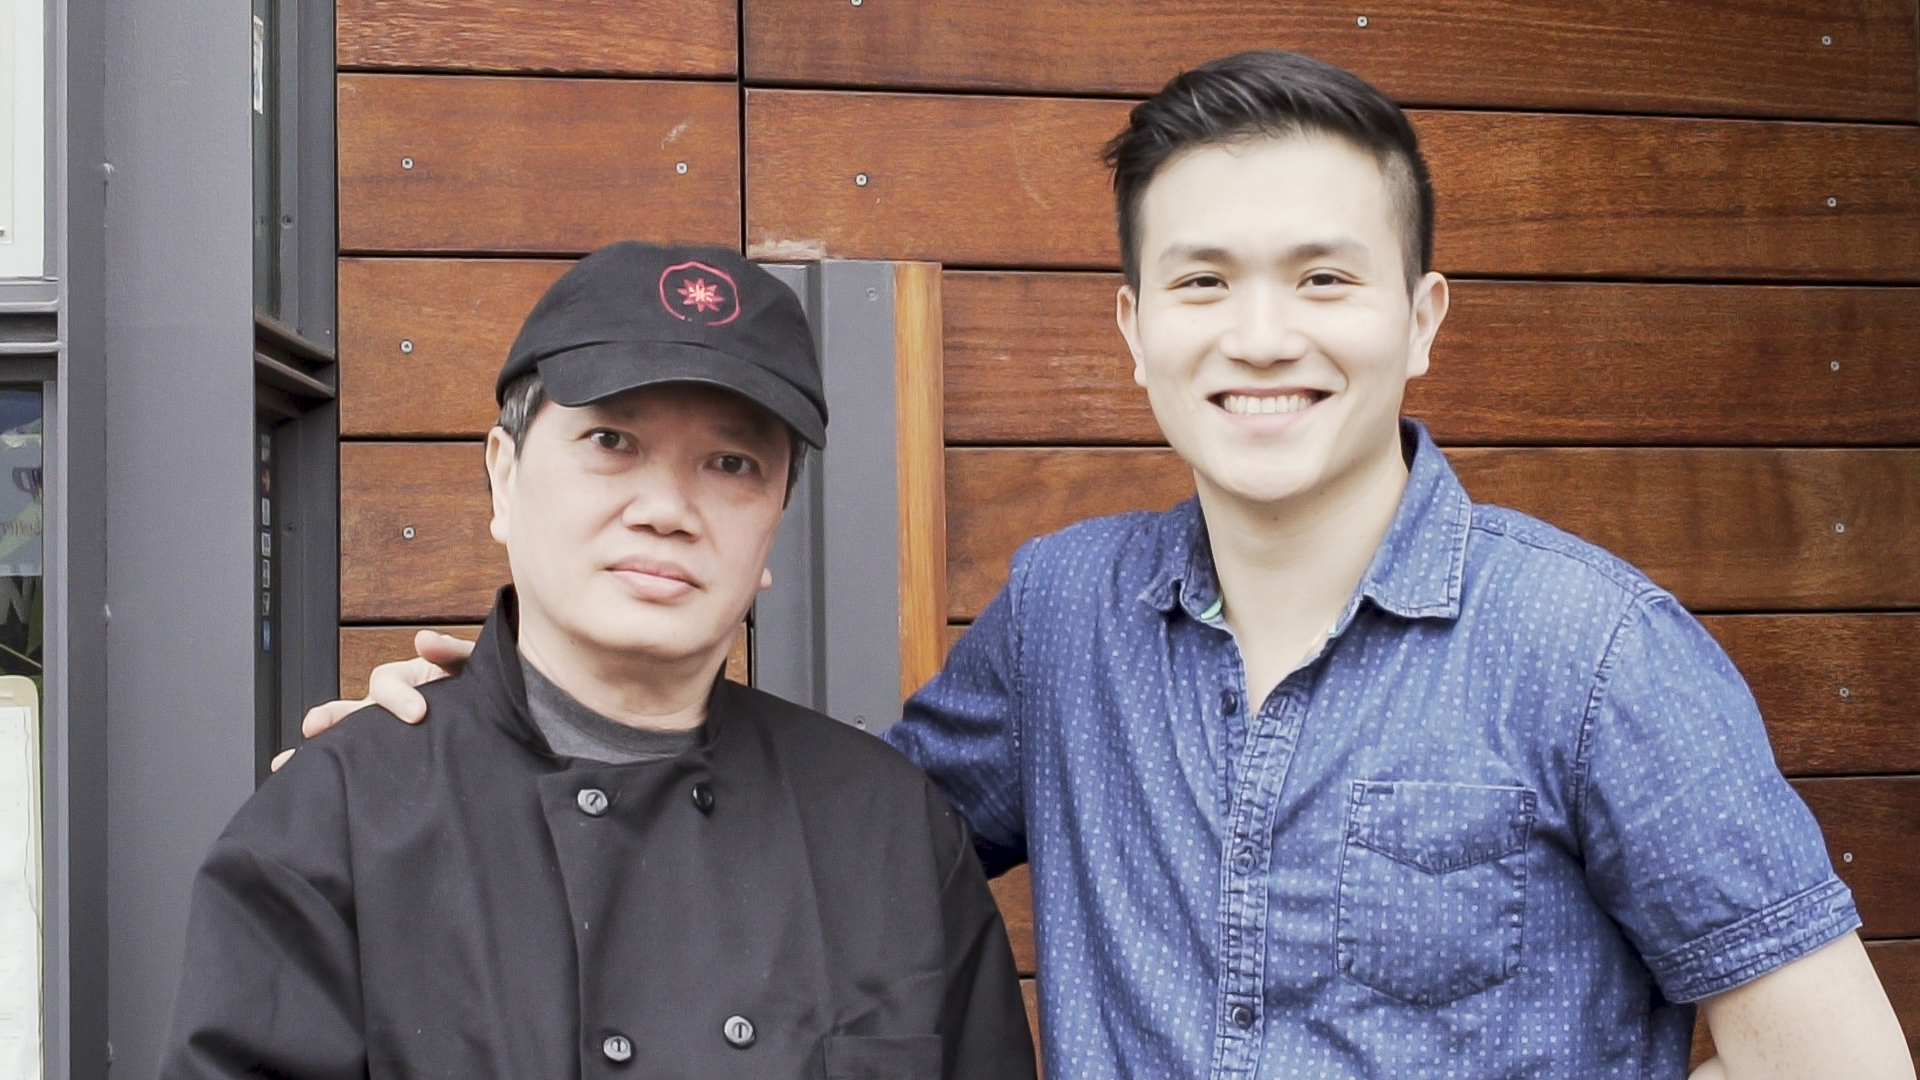 Mike and Lam Lien | © Culture Trip